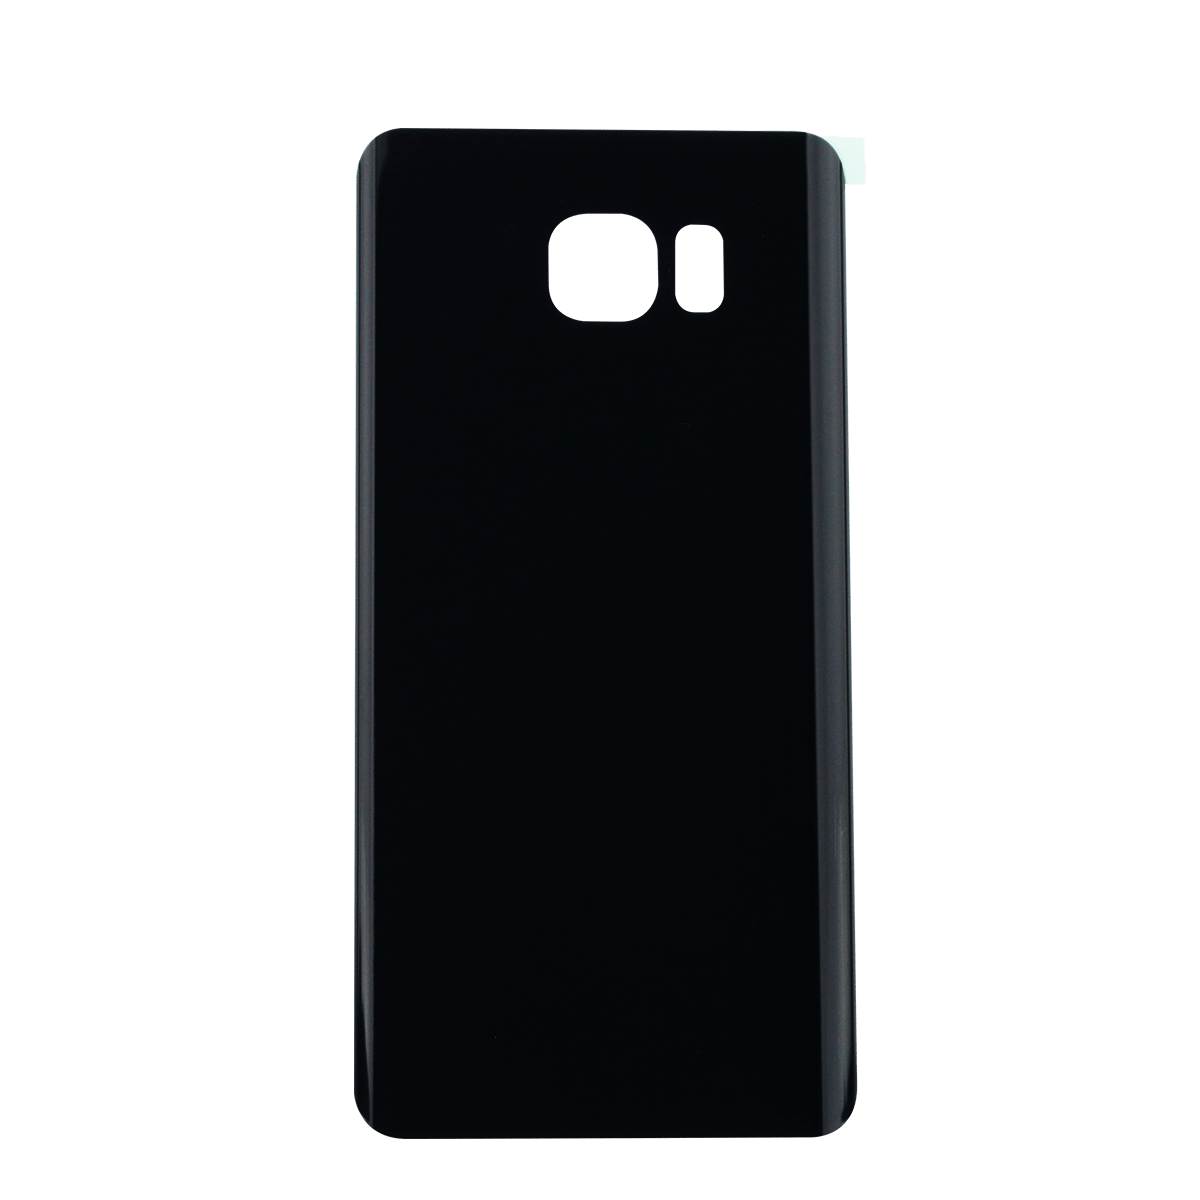 Samsung Galaxy Note 5 Back Battery Cover Replacement